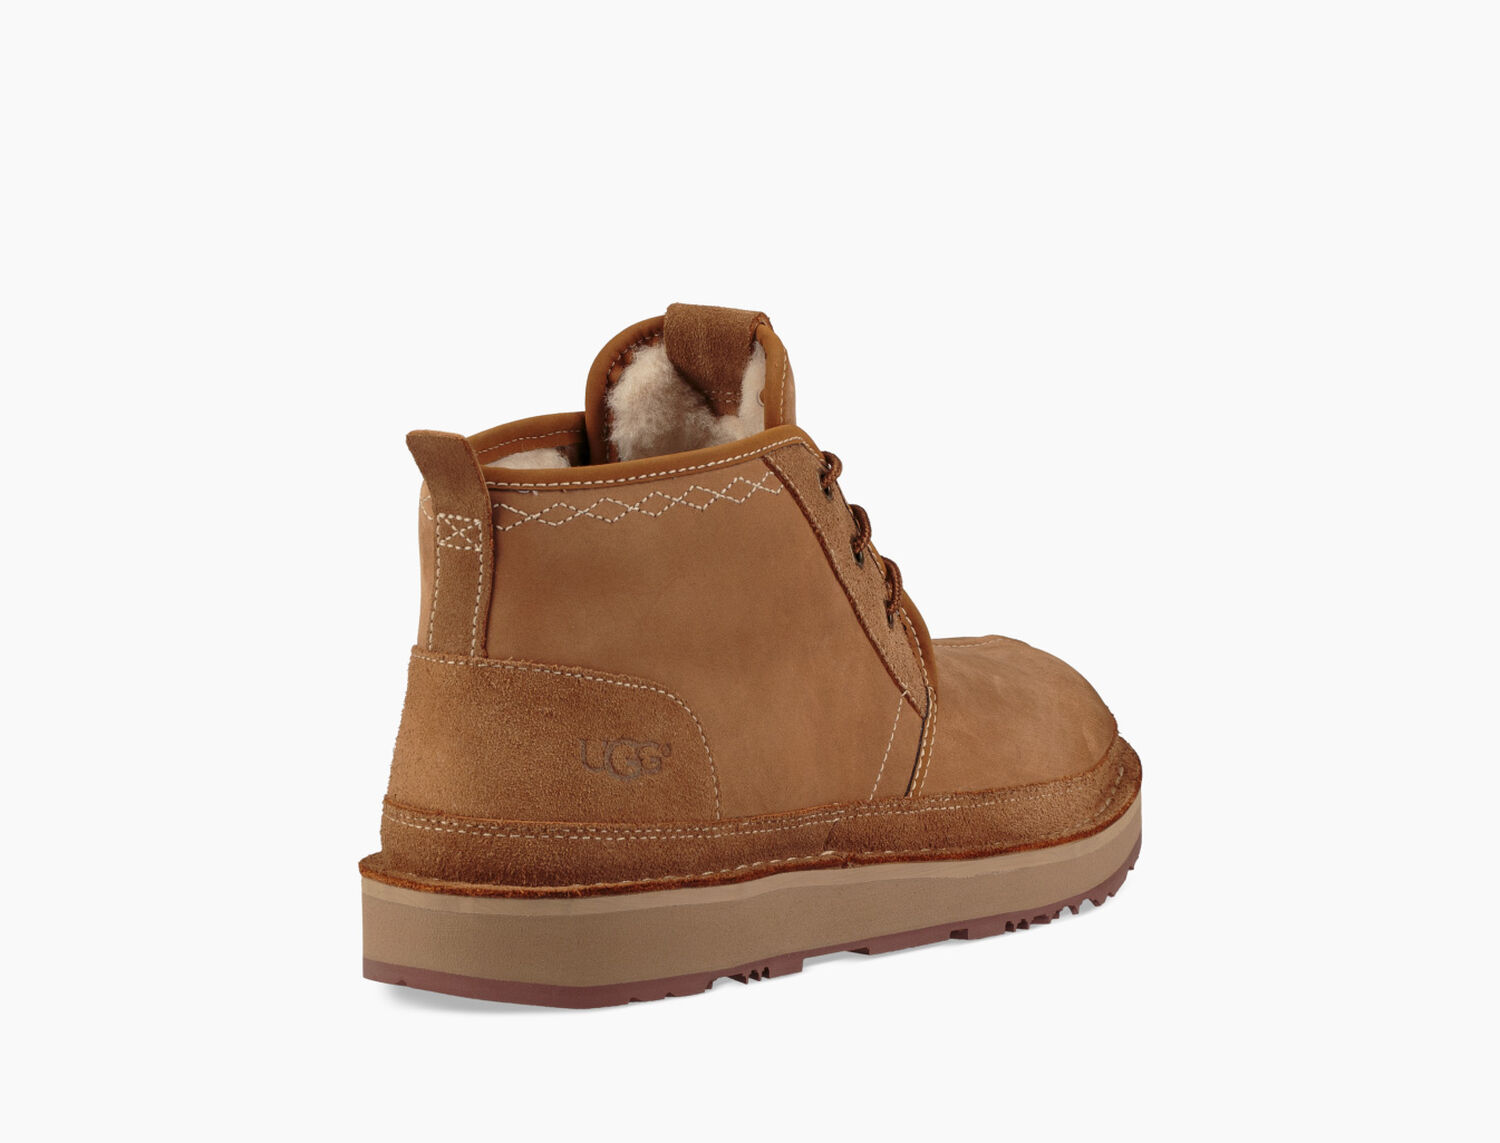 367e3f5636a Men's Share this product Avalanche Neumel Boot